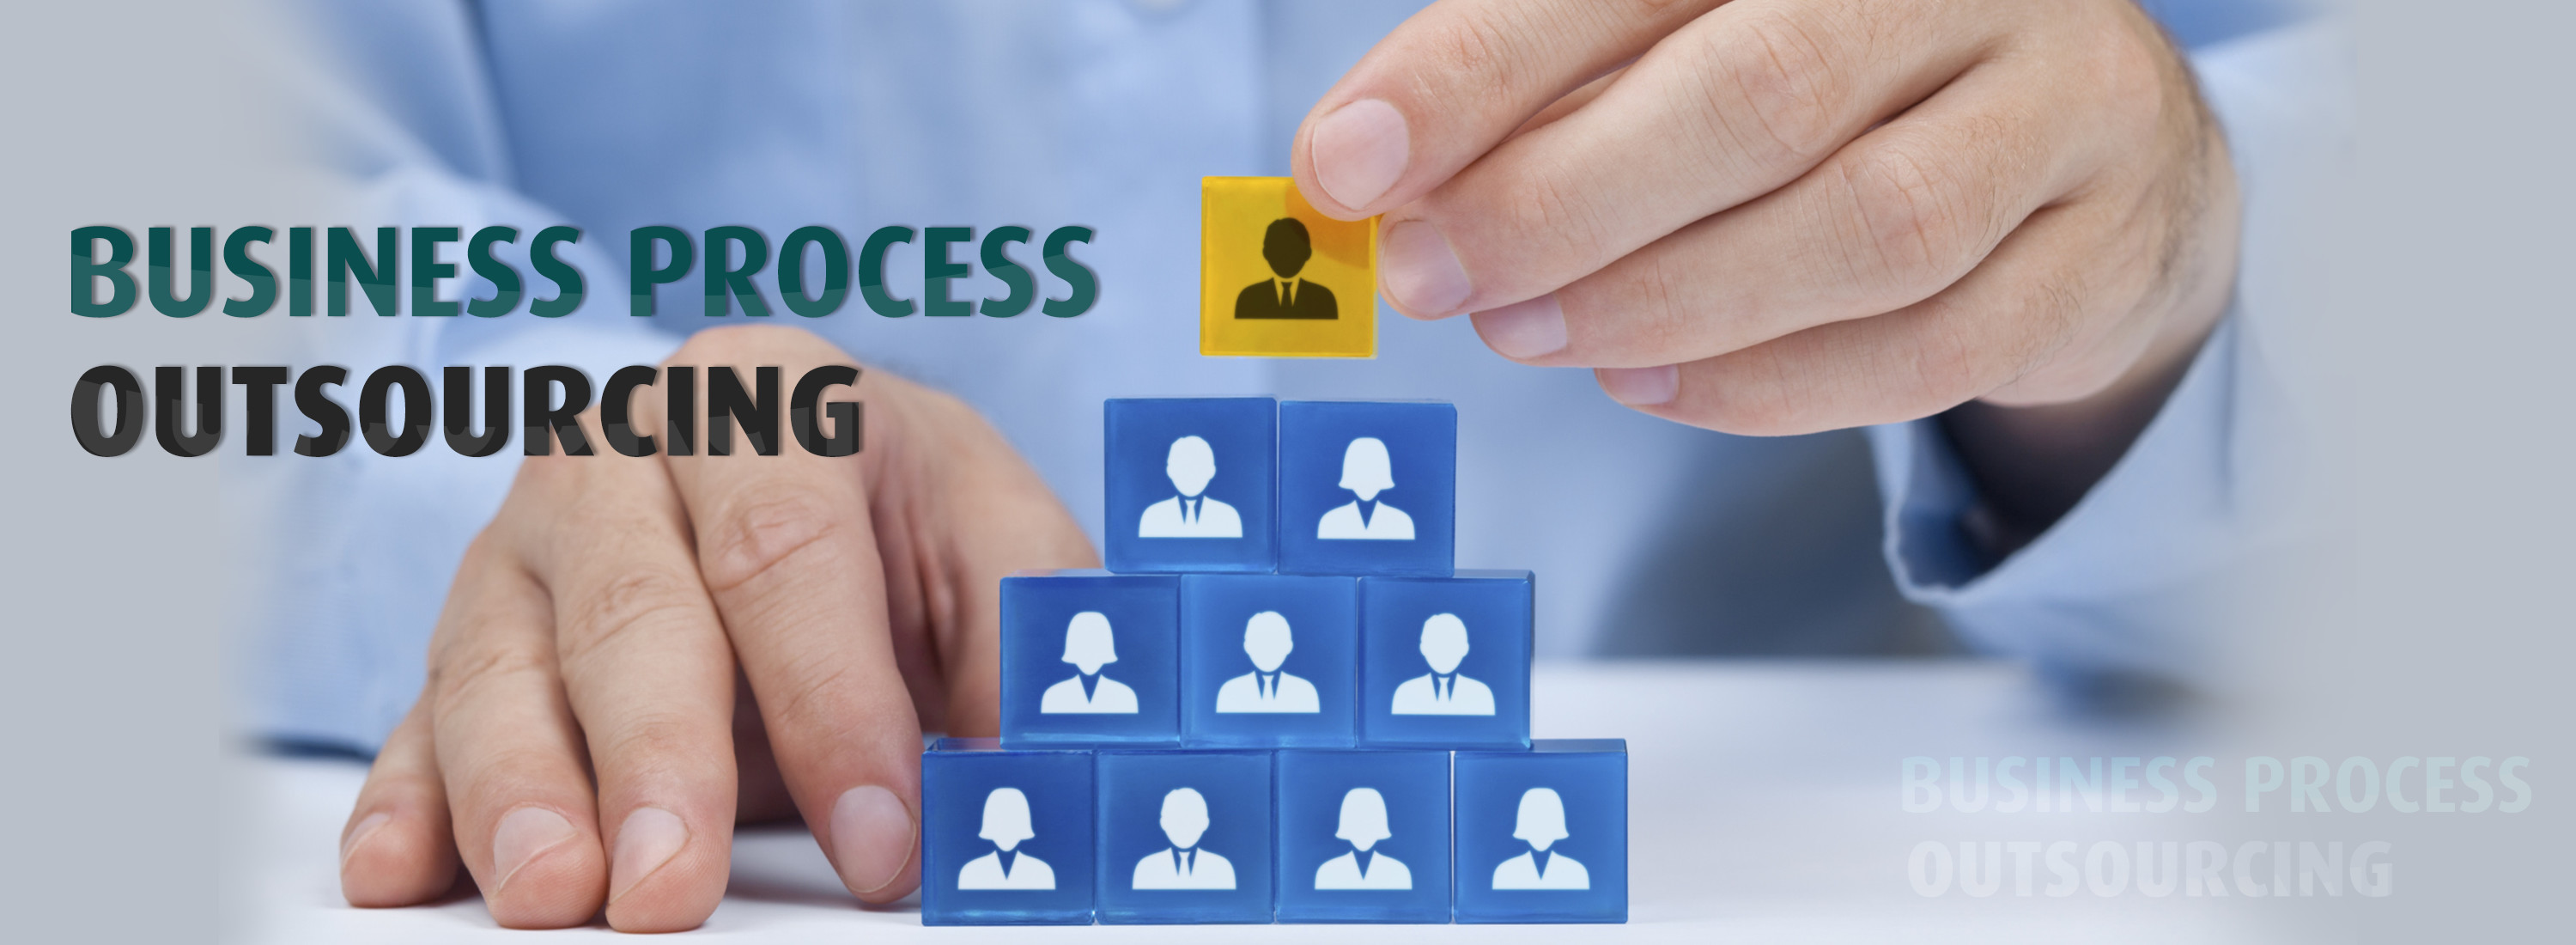 banner-bussiness-process-outsourcing